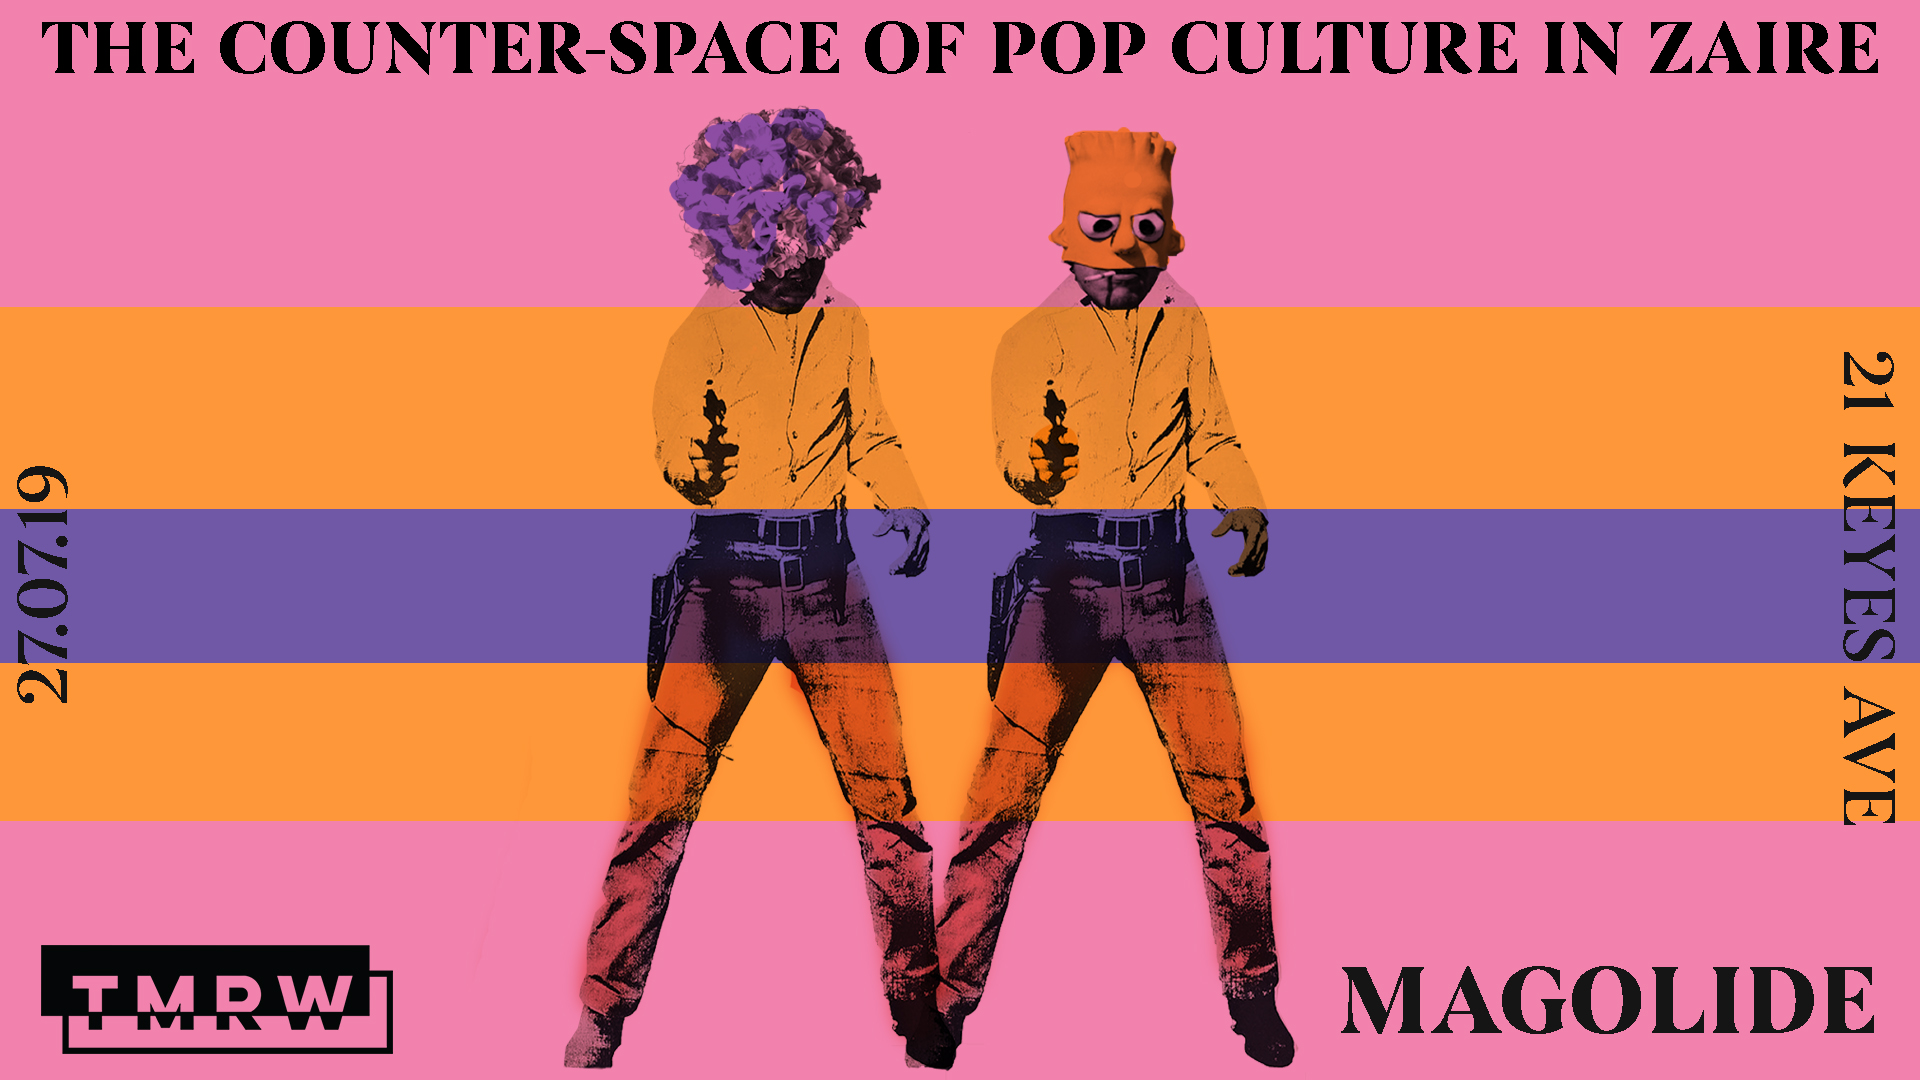 The Counterspace Of Pop Culture In Zaire - Magolide Collective